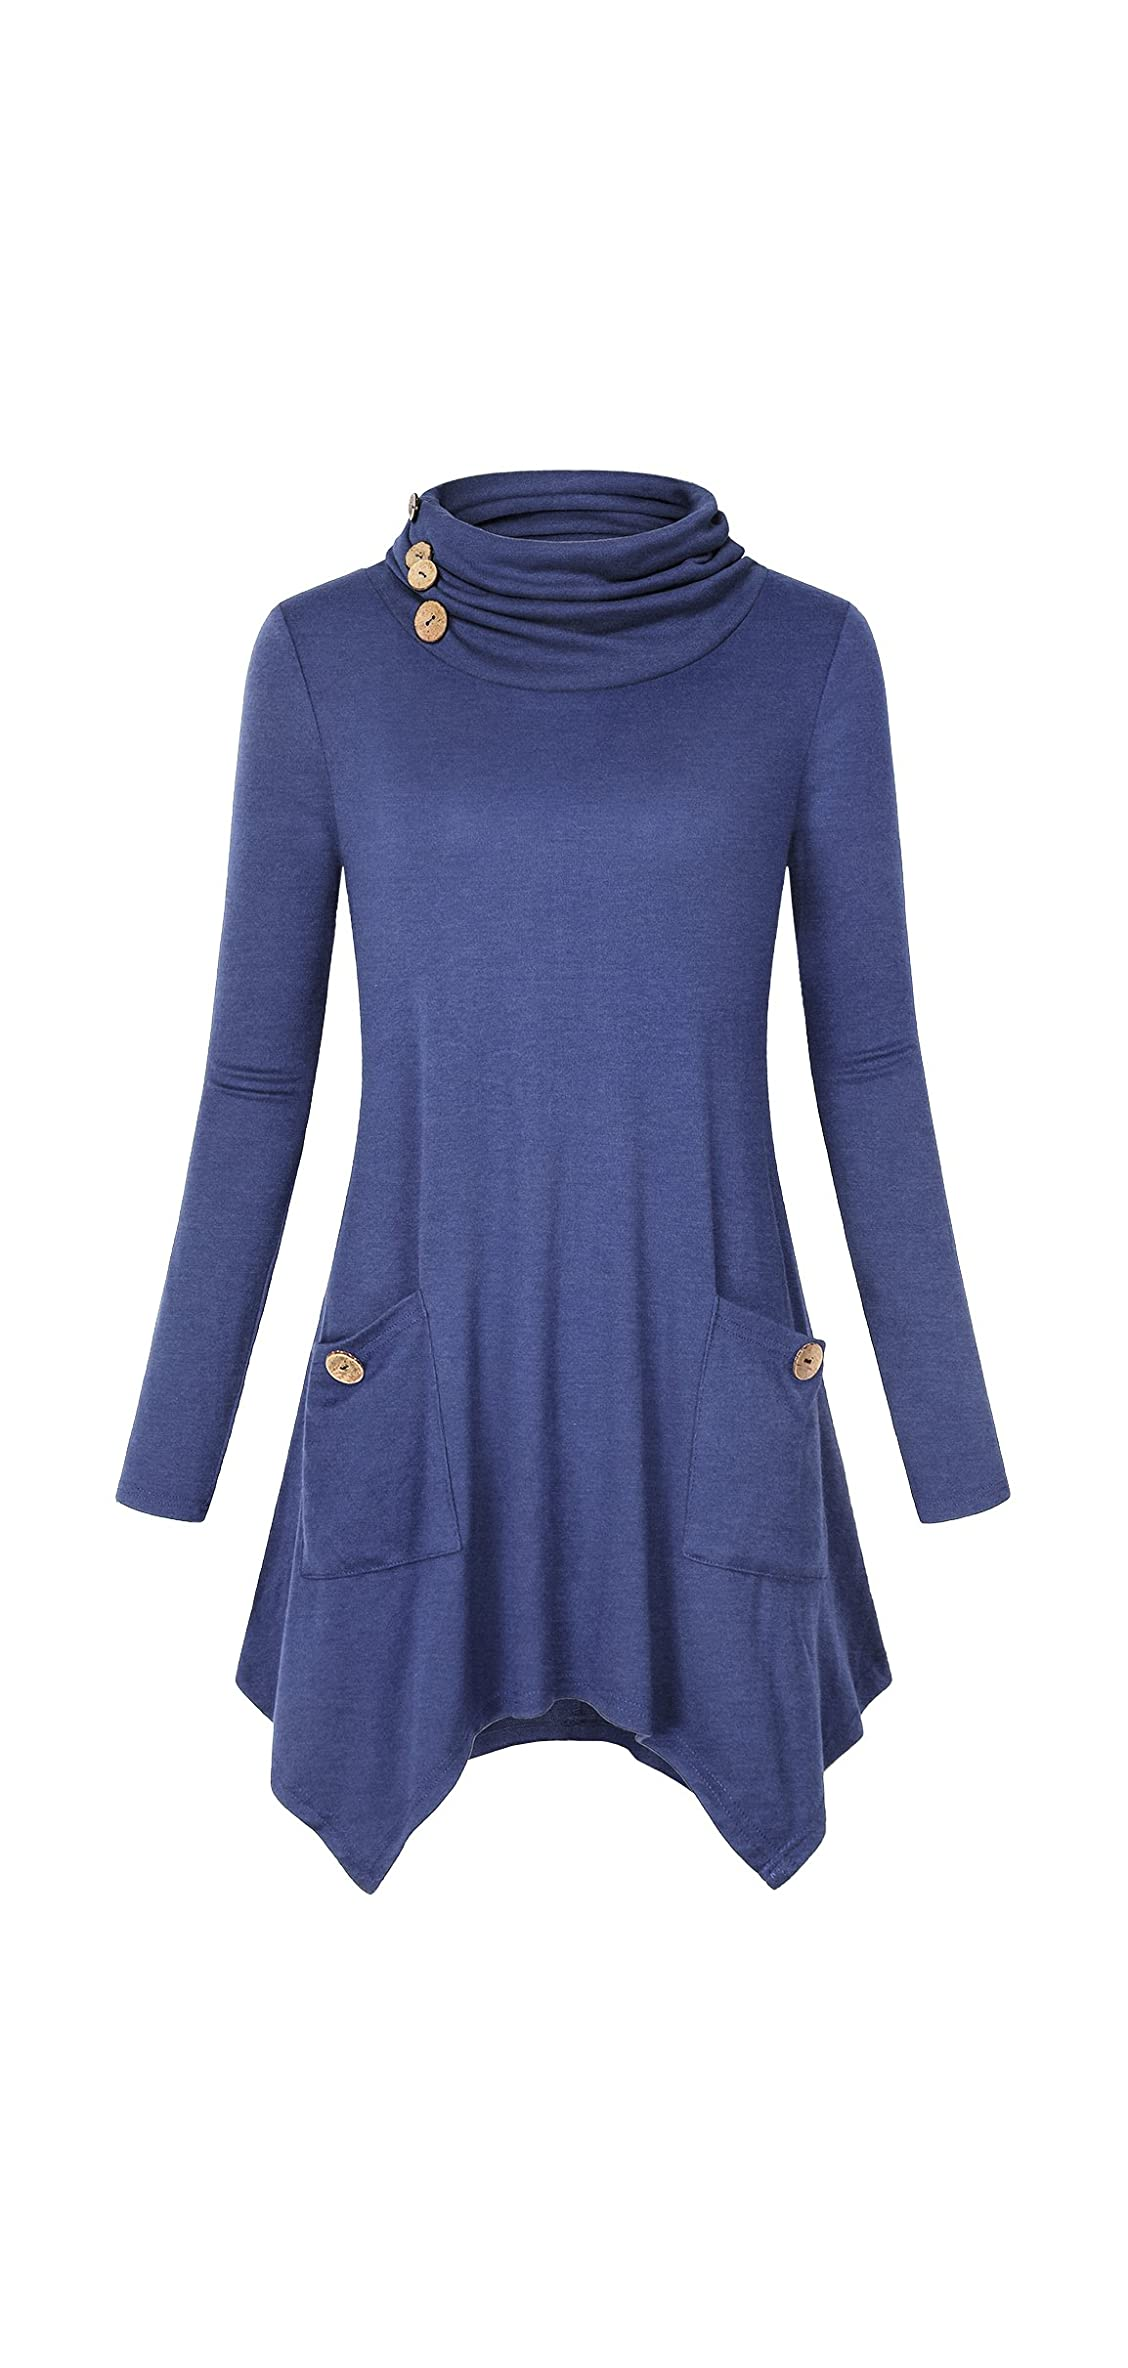 Women's Cowl Neck Asymmetric Hem Tunic Tops With Pockets